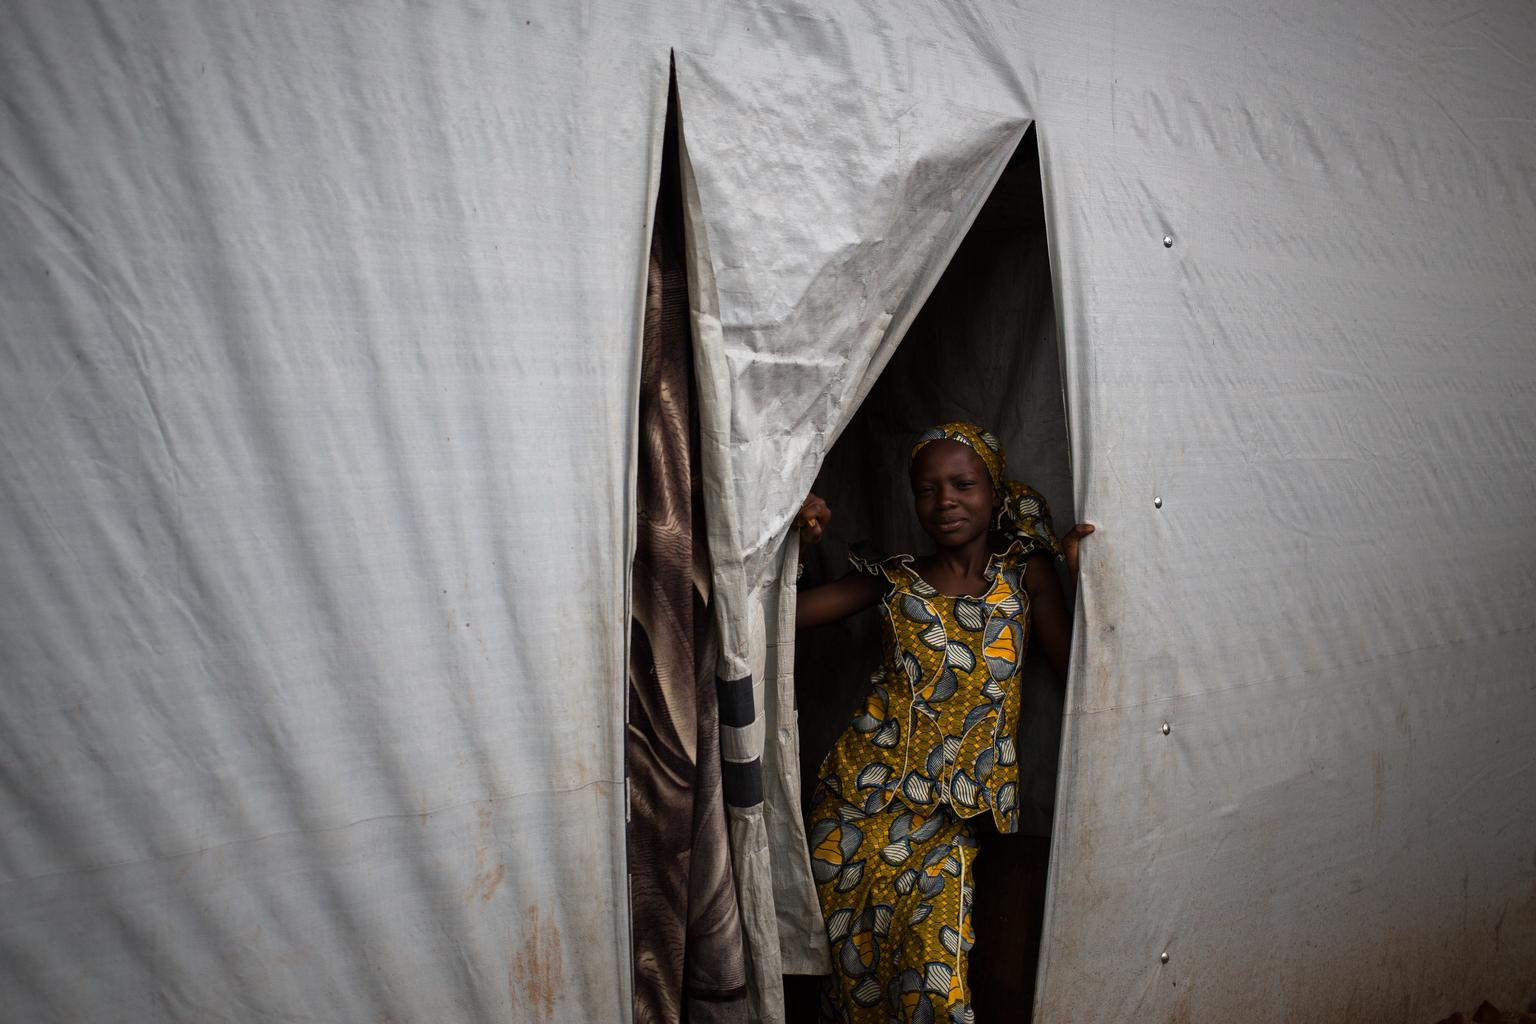 A girl stands at the entrance to the tent where she lives on the grounds of Grand Mosque in Bangui, where displaced Muslim families have taken refuge. July 2014.